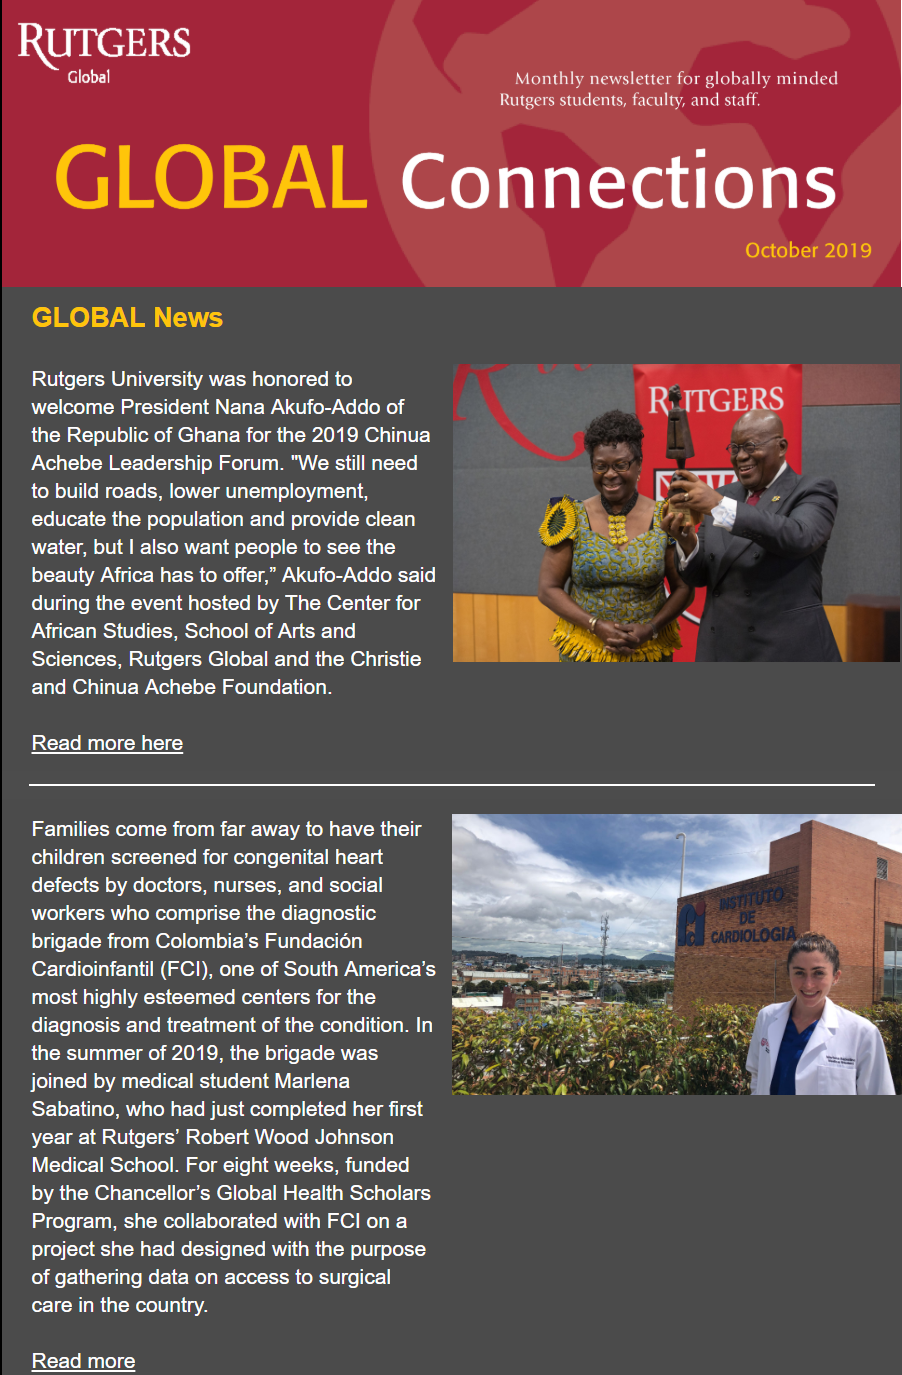 Thumbnail of October 2019 Global Connections Newsletter